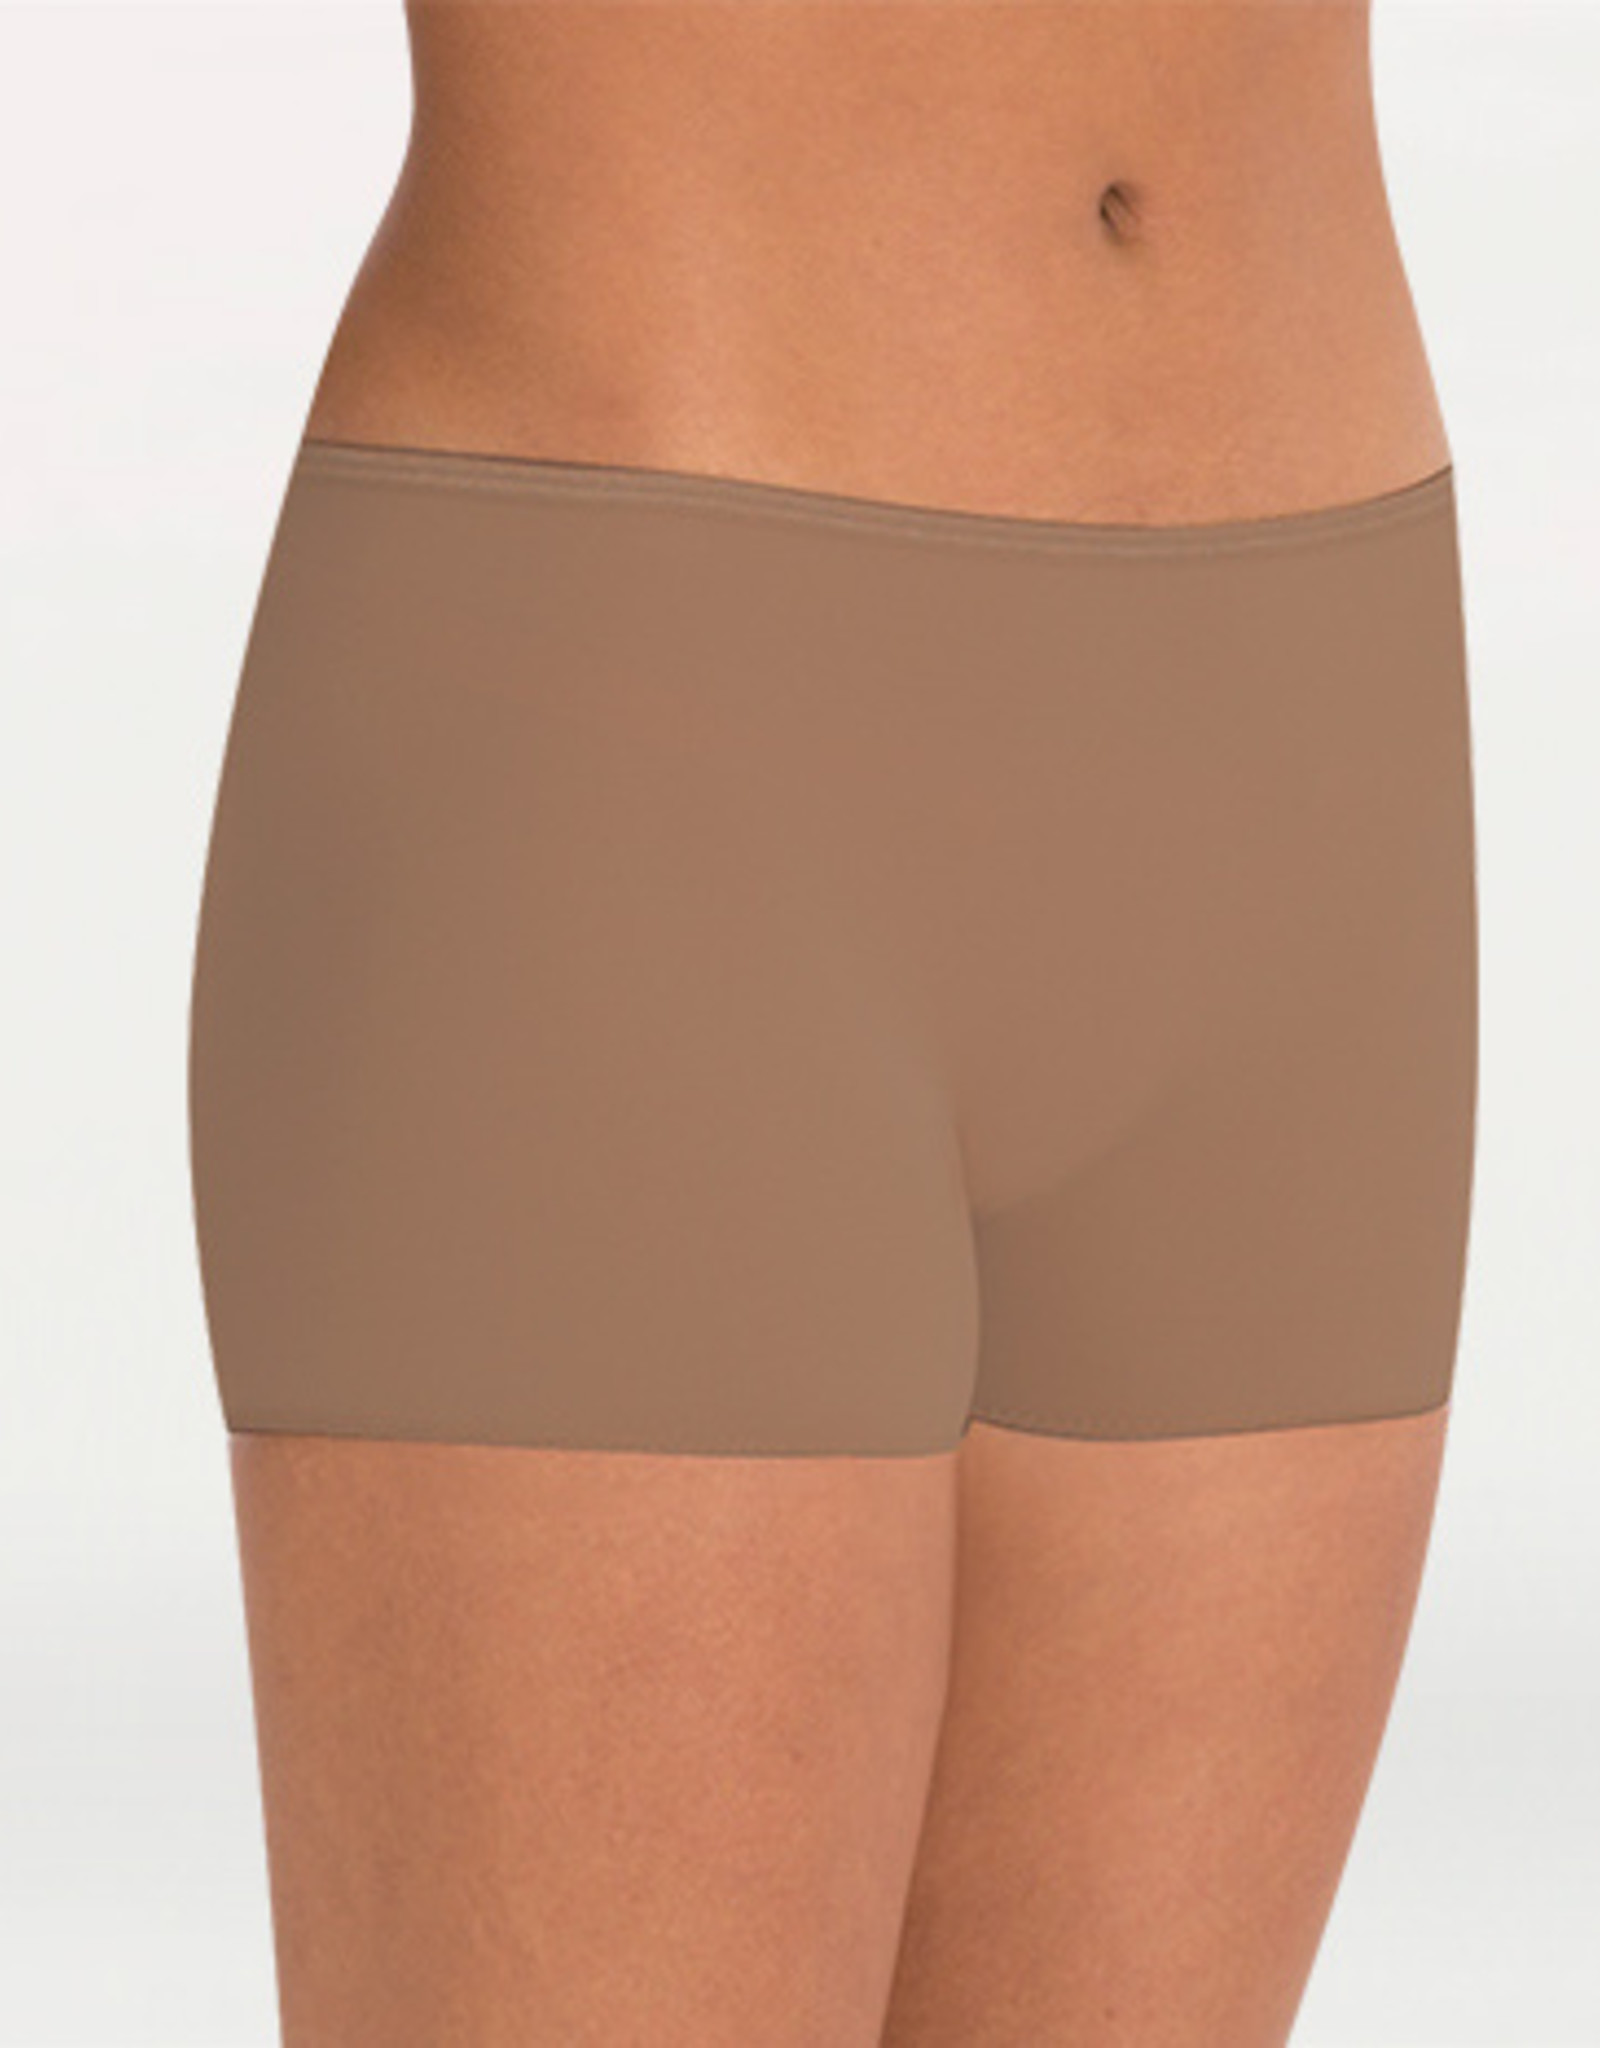 BODY WRAPPERS HOT SHORTS (289)